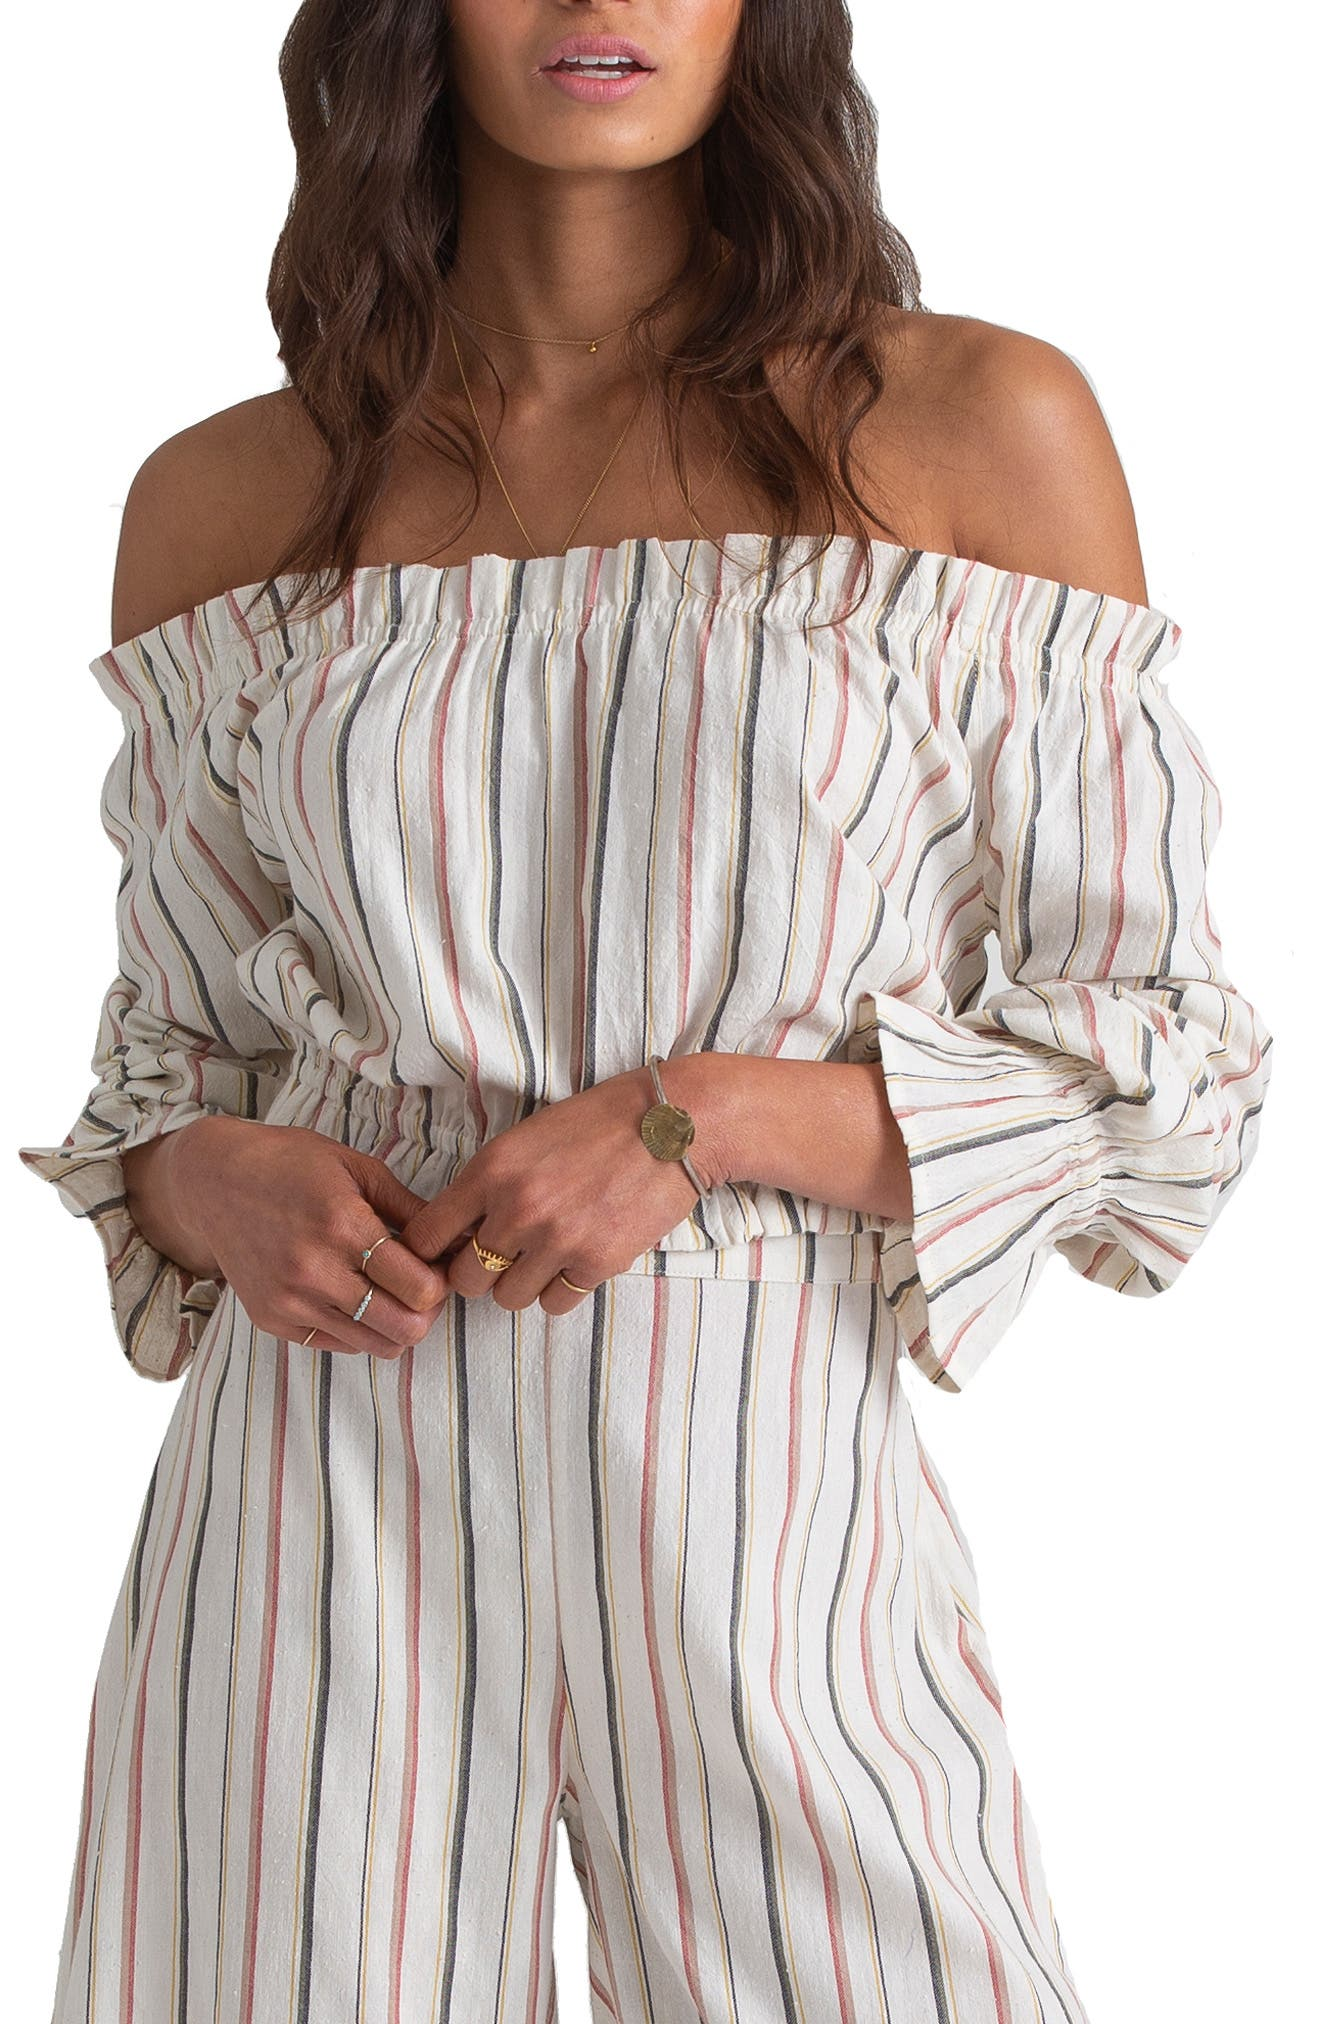 x Sincerely Jules Tulum Weathers Off-the-Shoulder Crop Top, Main, color, MULTI